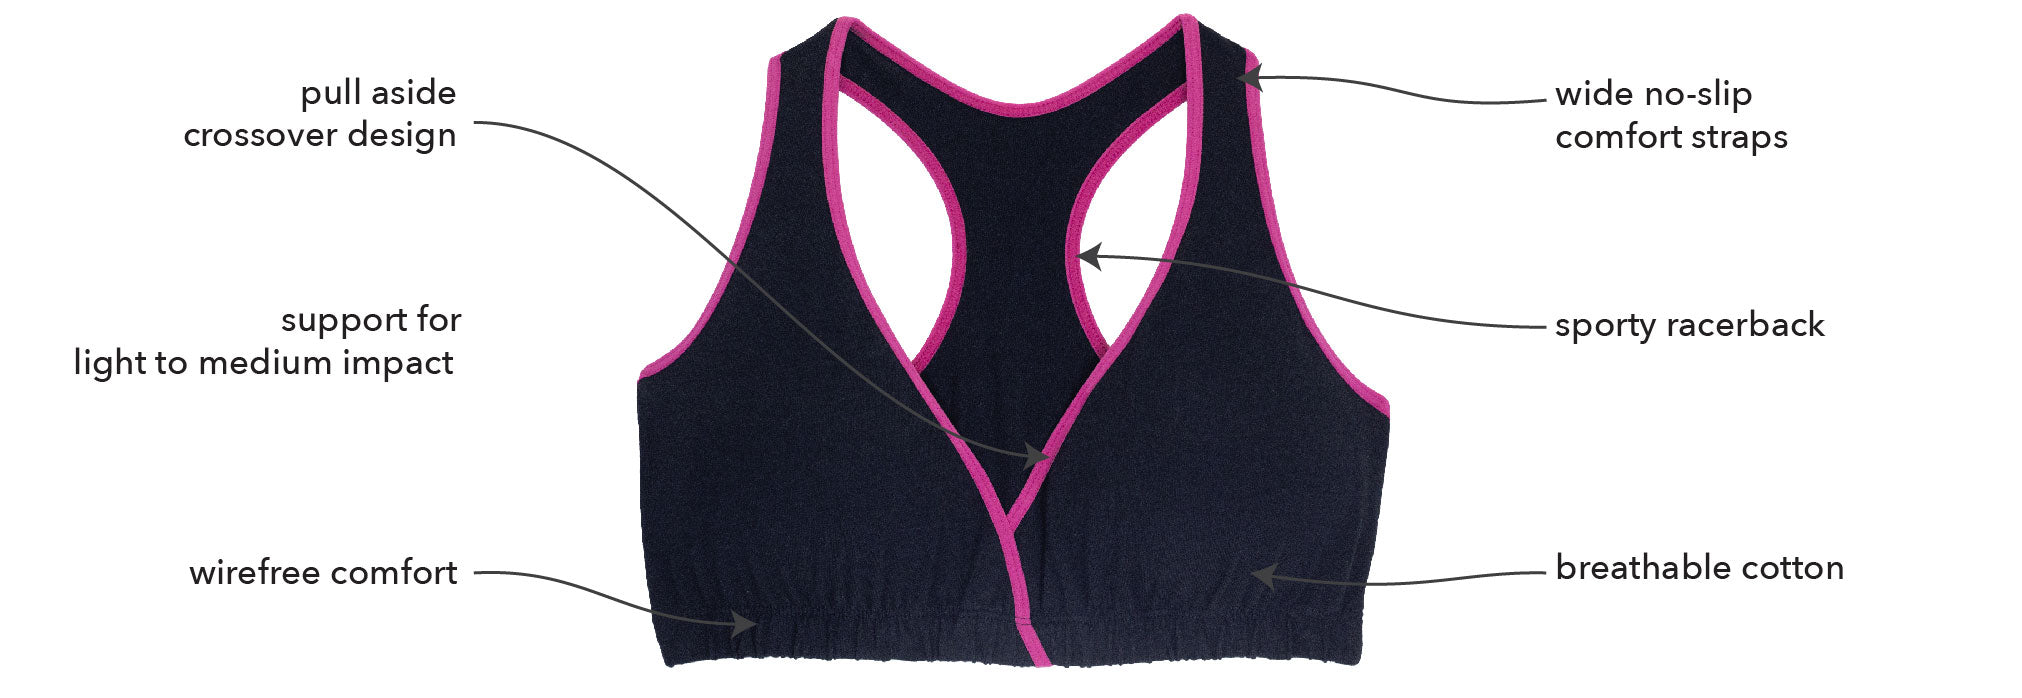 The Deanna - Cotton Nursing Sleep Bra With Sporty Racerback | 4010 - Product Detail View